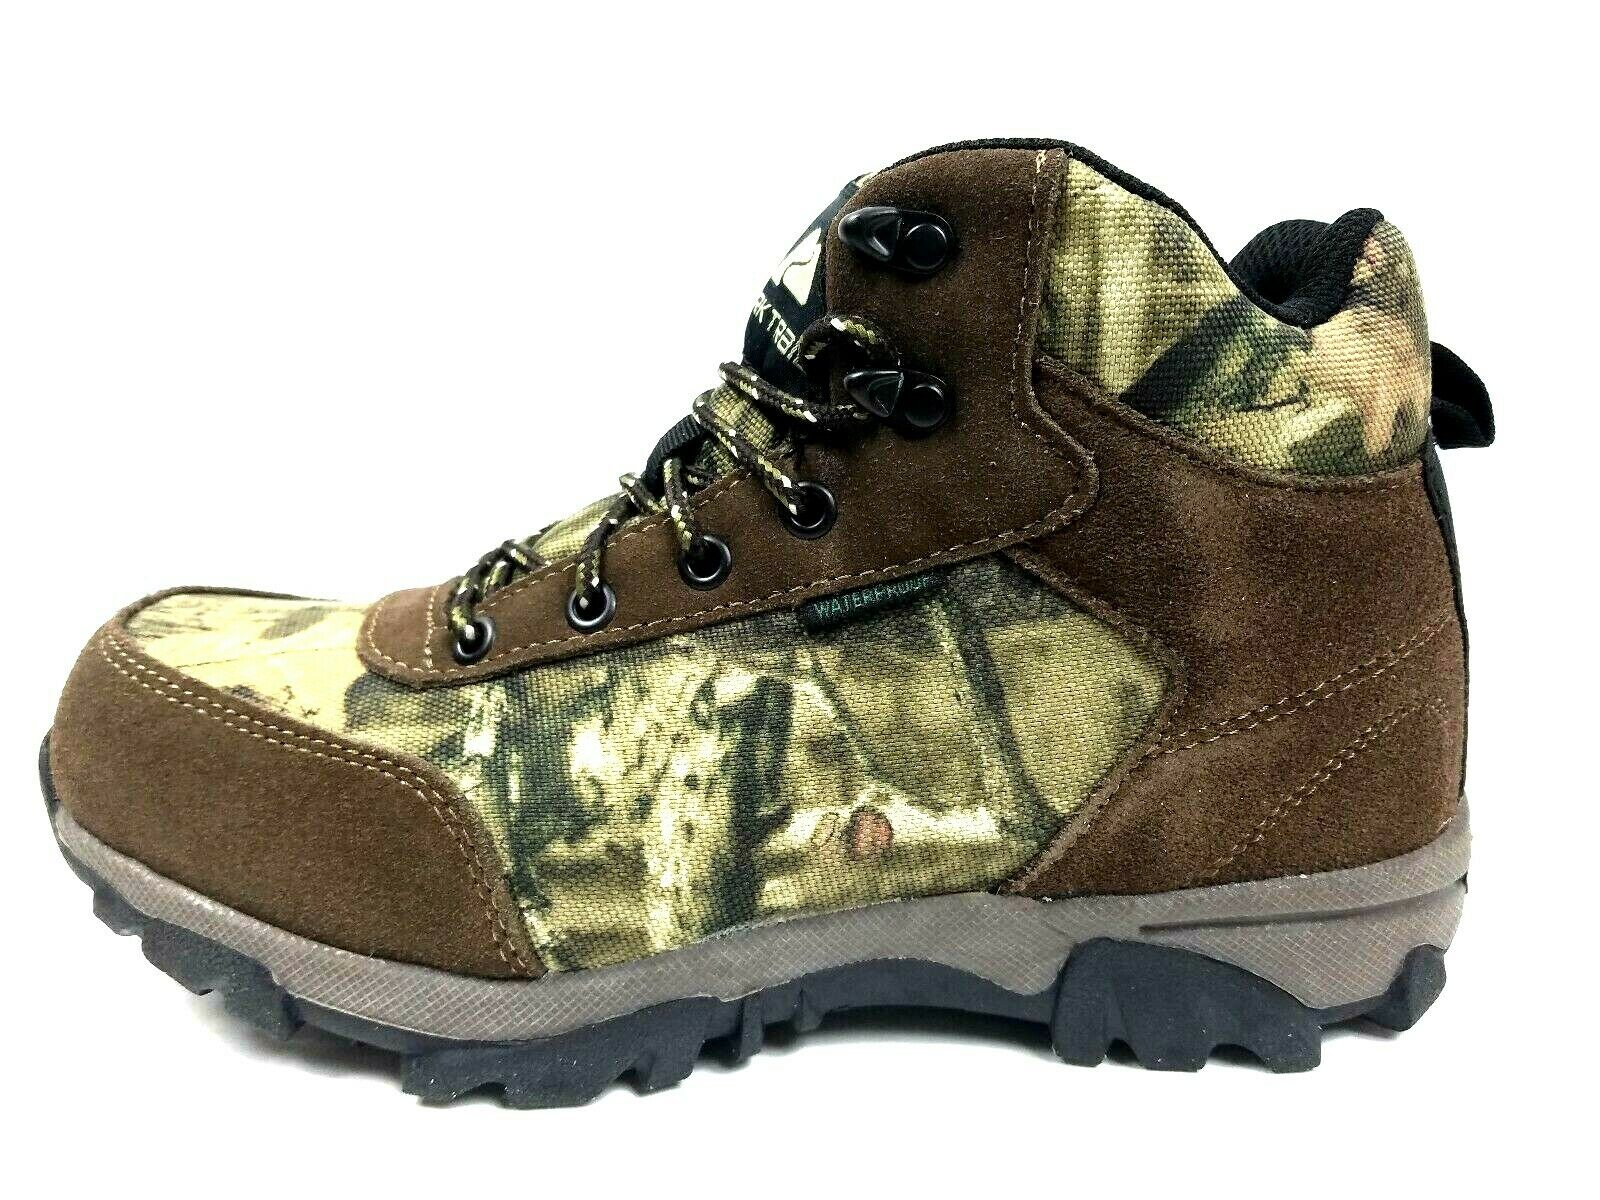 Men's Boots Hiking Hunting Camping Leather Waterproof shoes Boots Ozark Trails